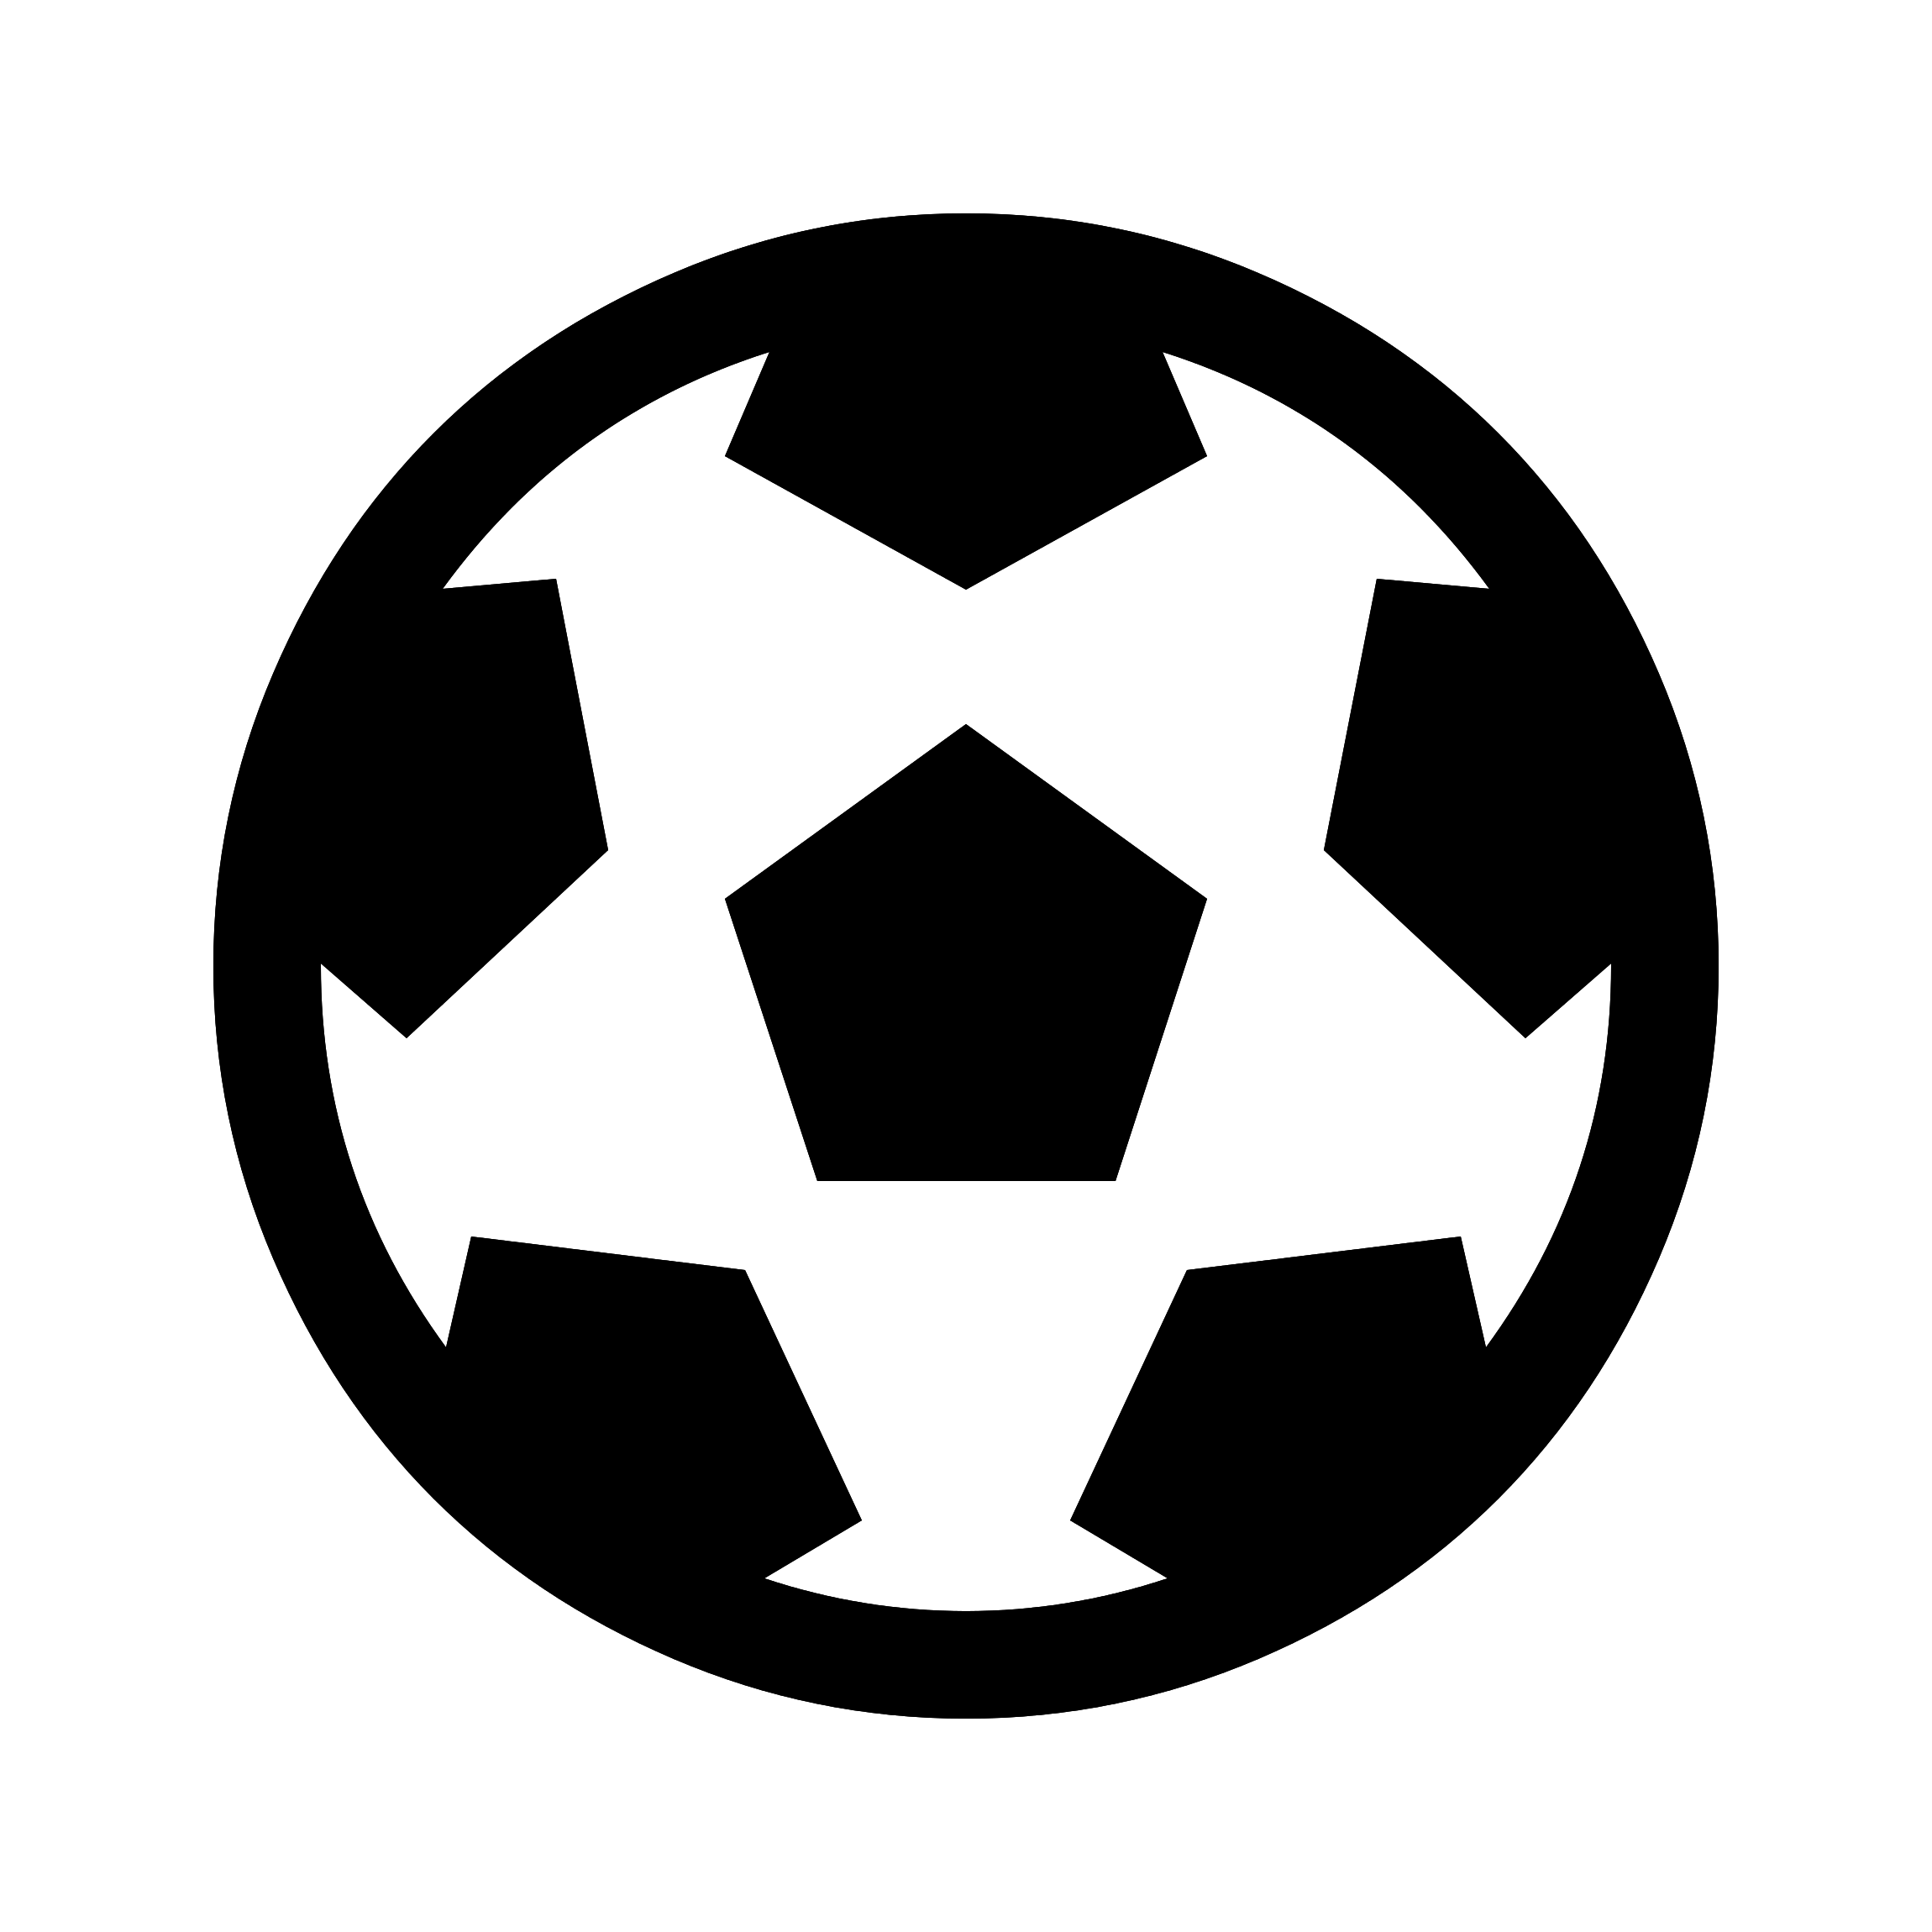 data/images/soccer-ball-o.png